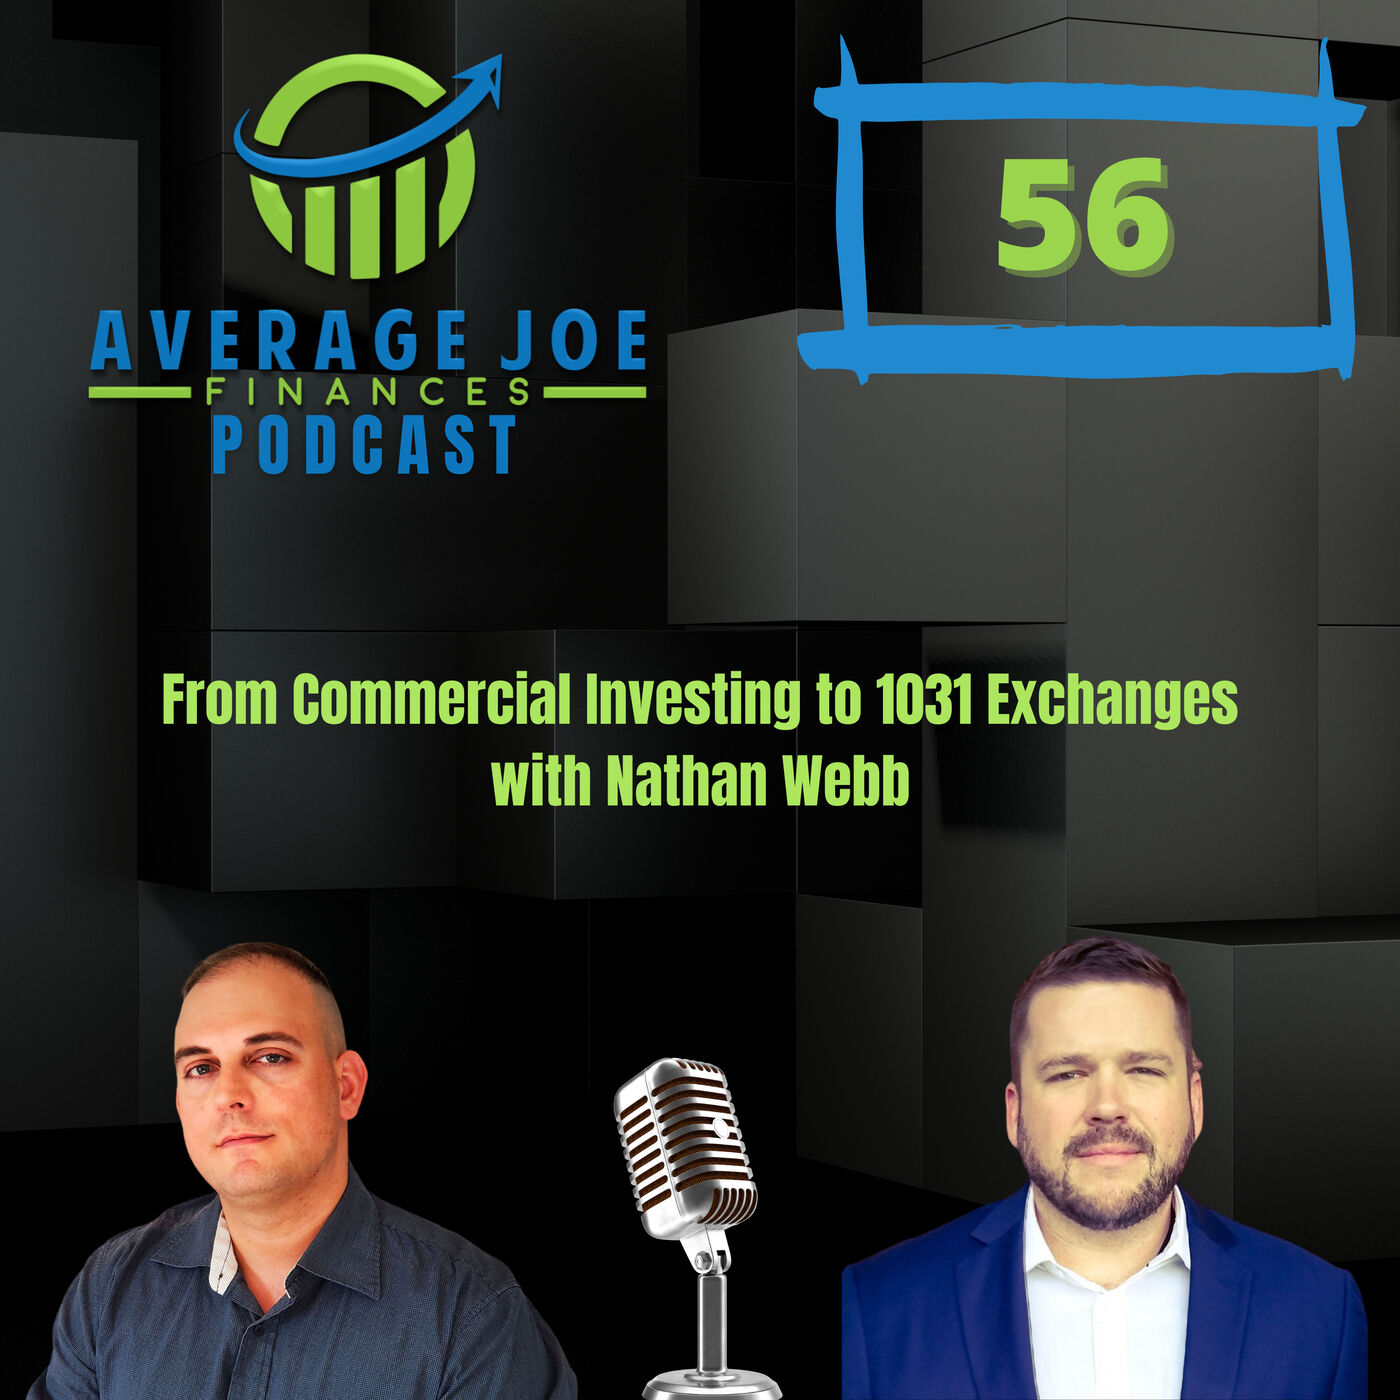 Ep 56 - From Commercial Investing to 1031 Exchanges